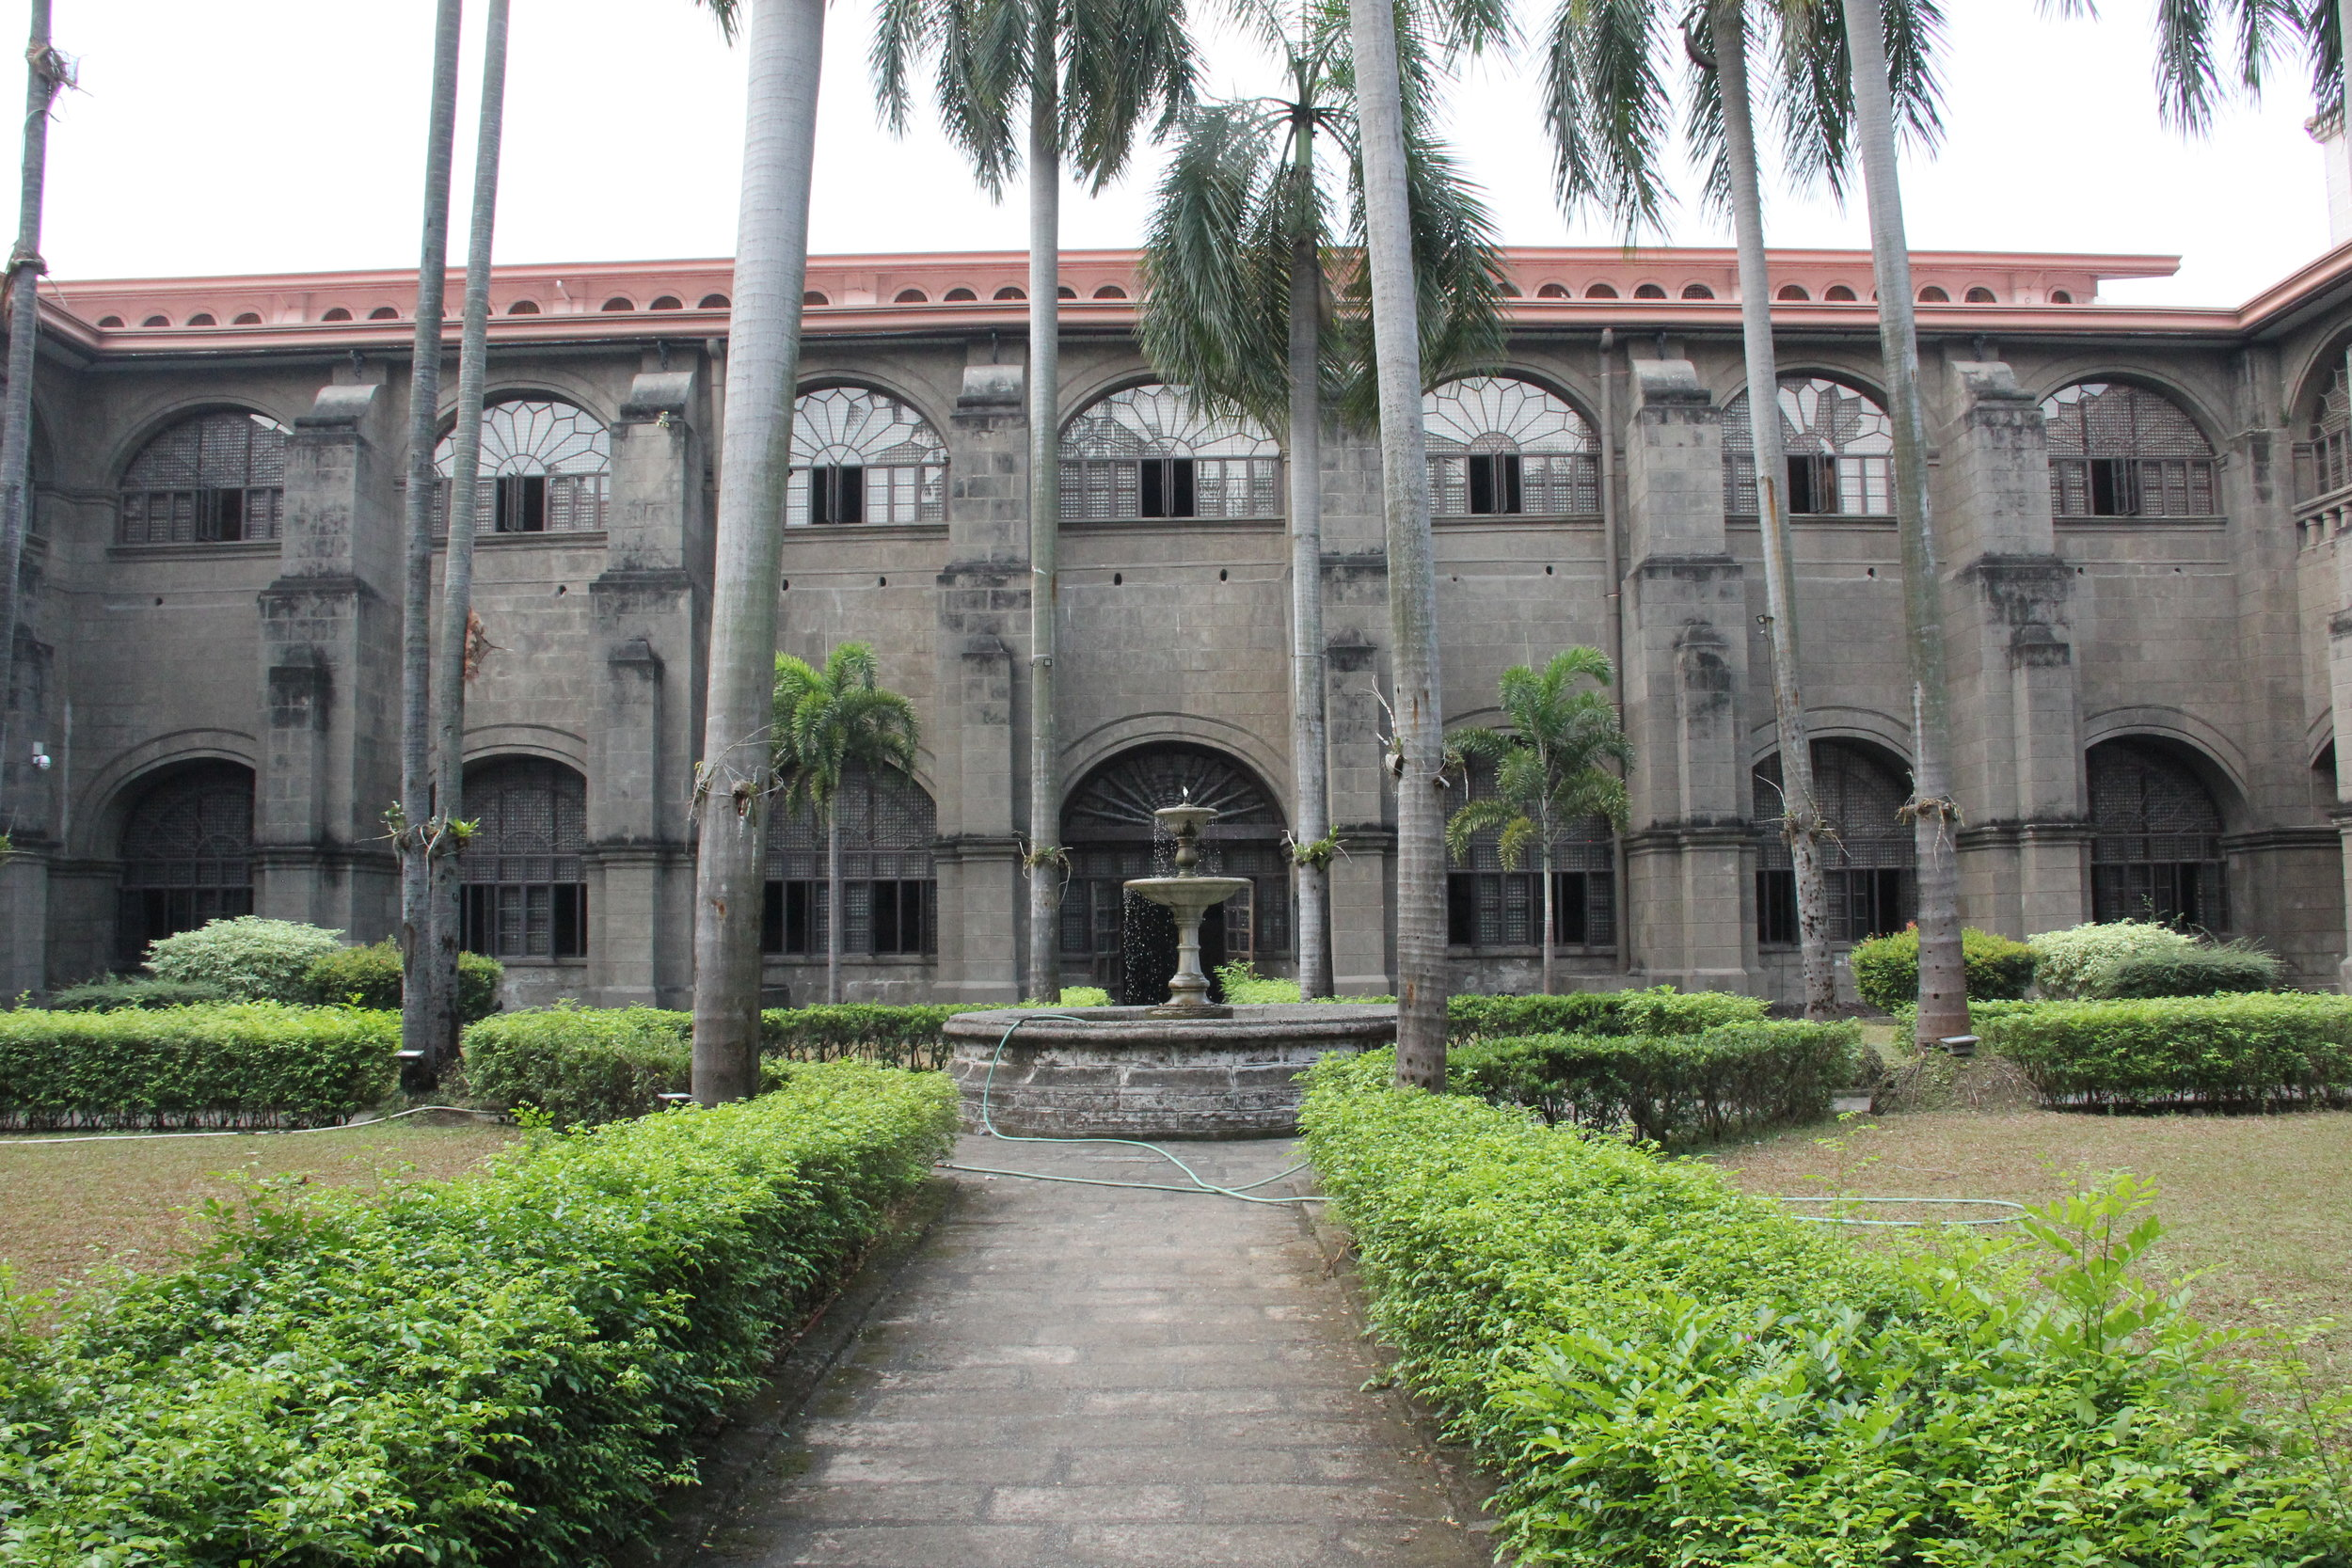 Interior Courtyard of San Augustin Church